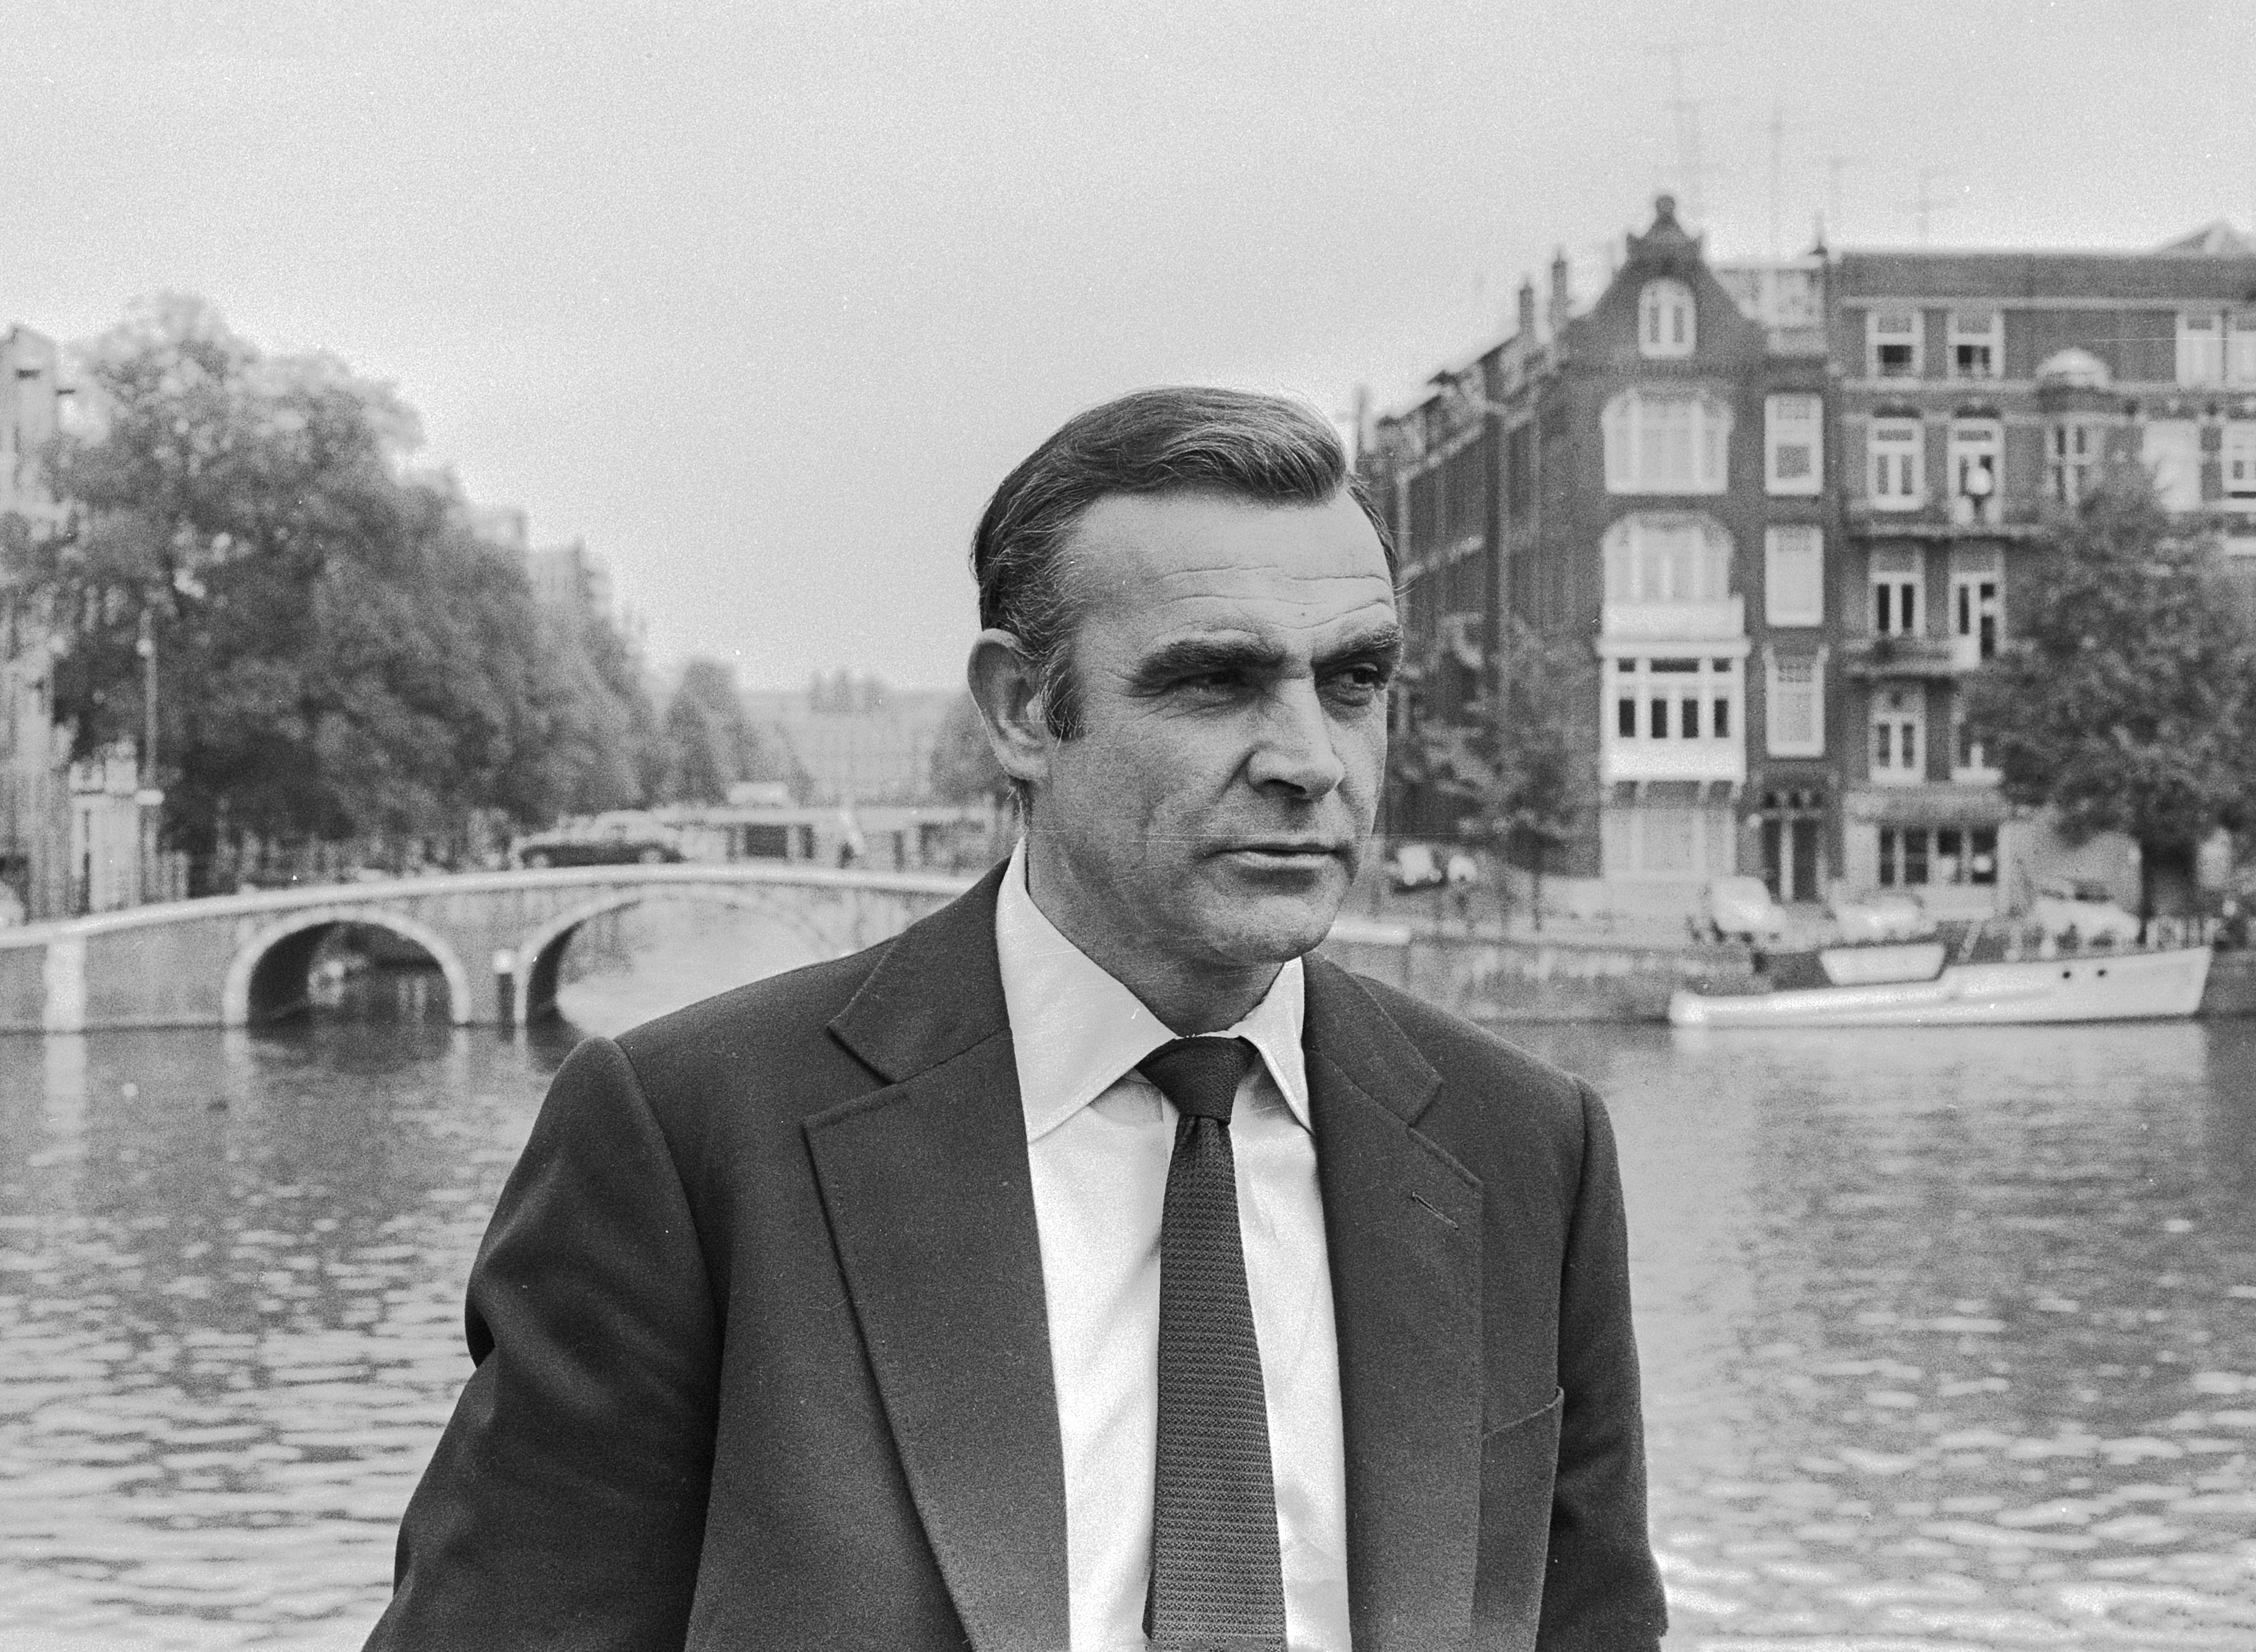 Sean Connery. Photo: Mieremet, Rob / Anefo / Wikimedia CC